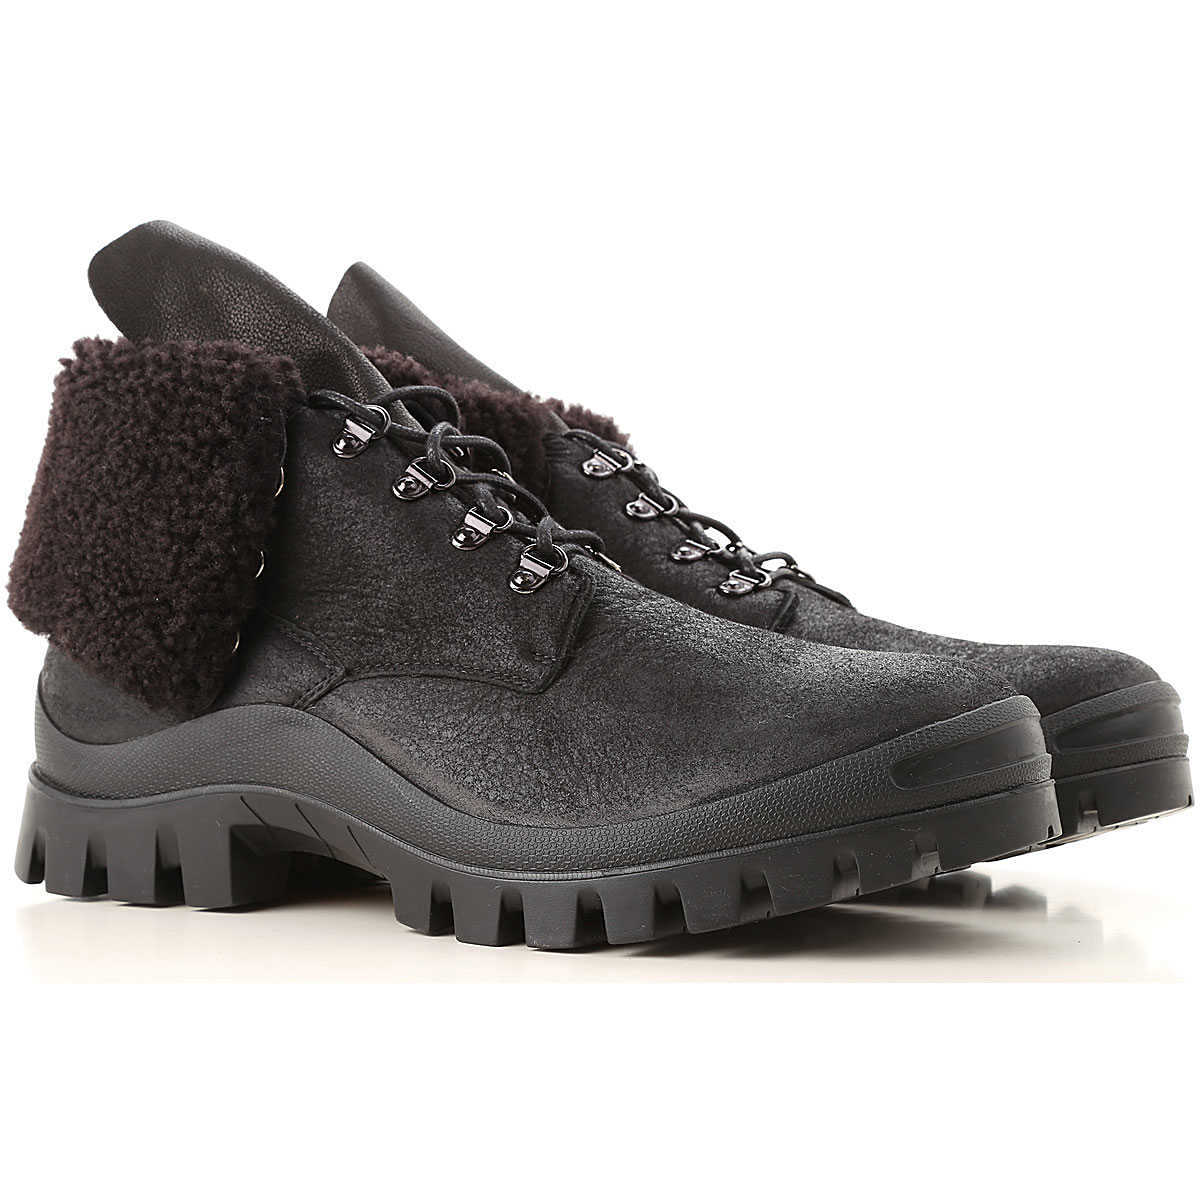 Henderson Boots for Men Booties On Sale - GOOFASH